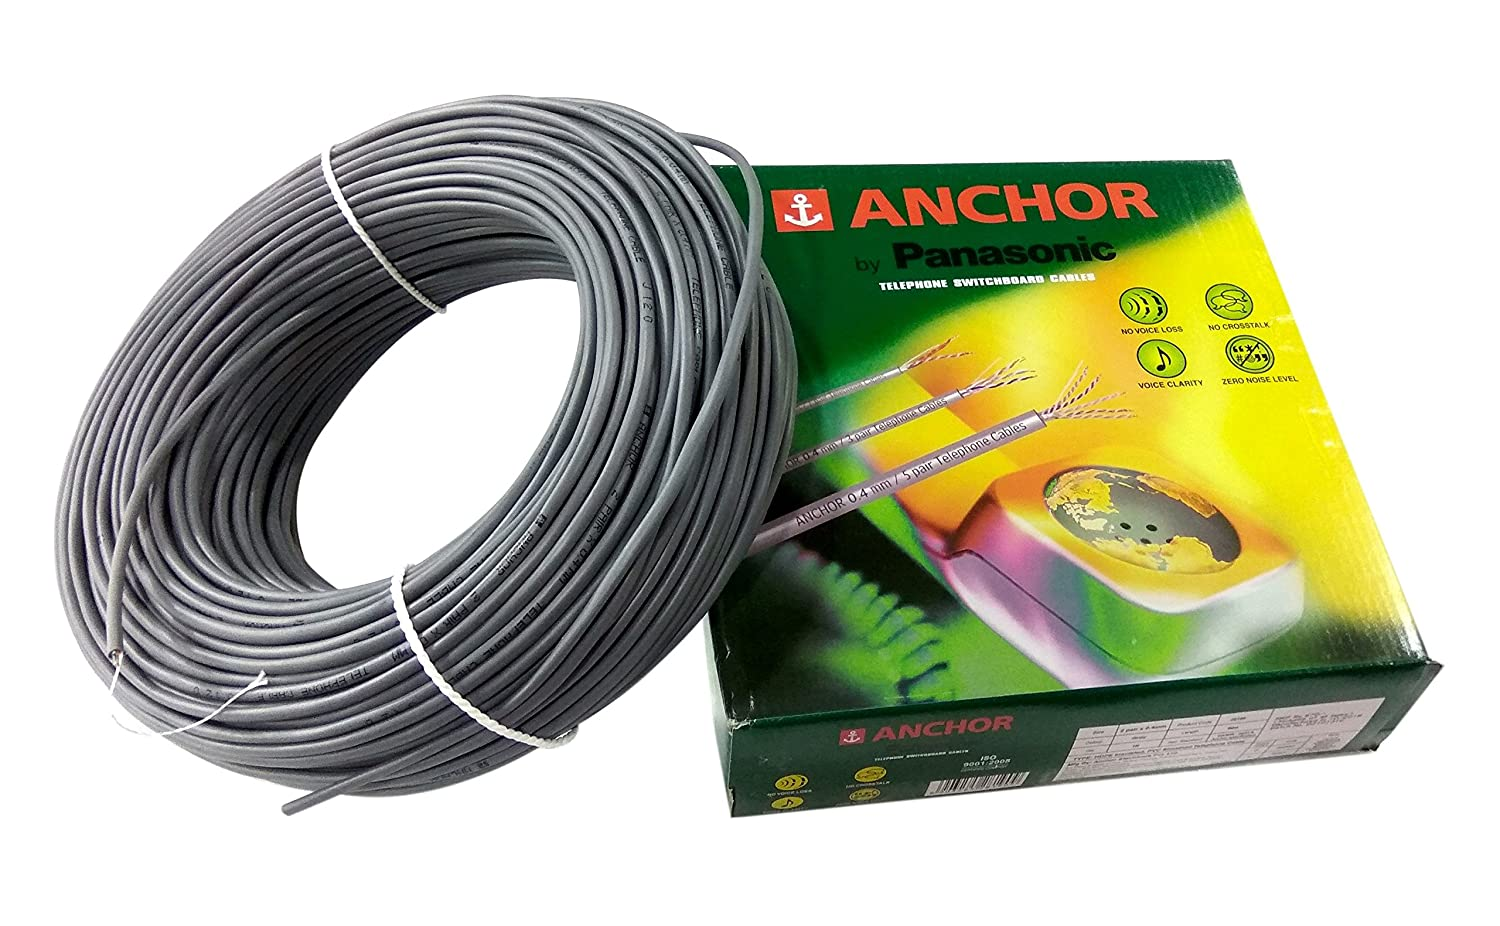 Anchor Telephone 2 Pairs 04mm 90m Length Sensor Cable How To Wire A Home Improvement